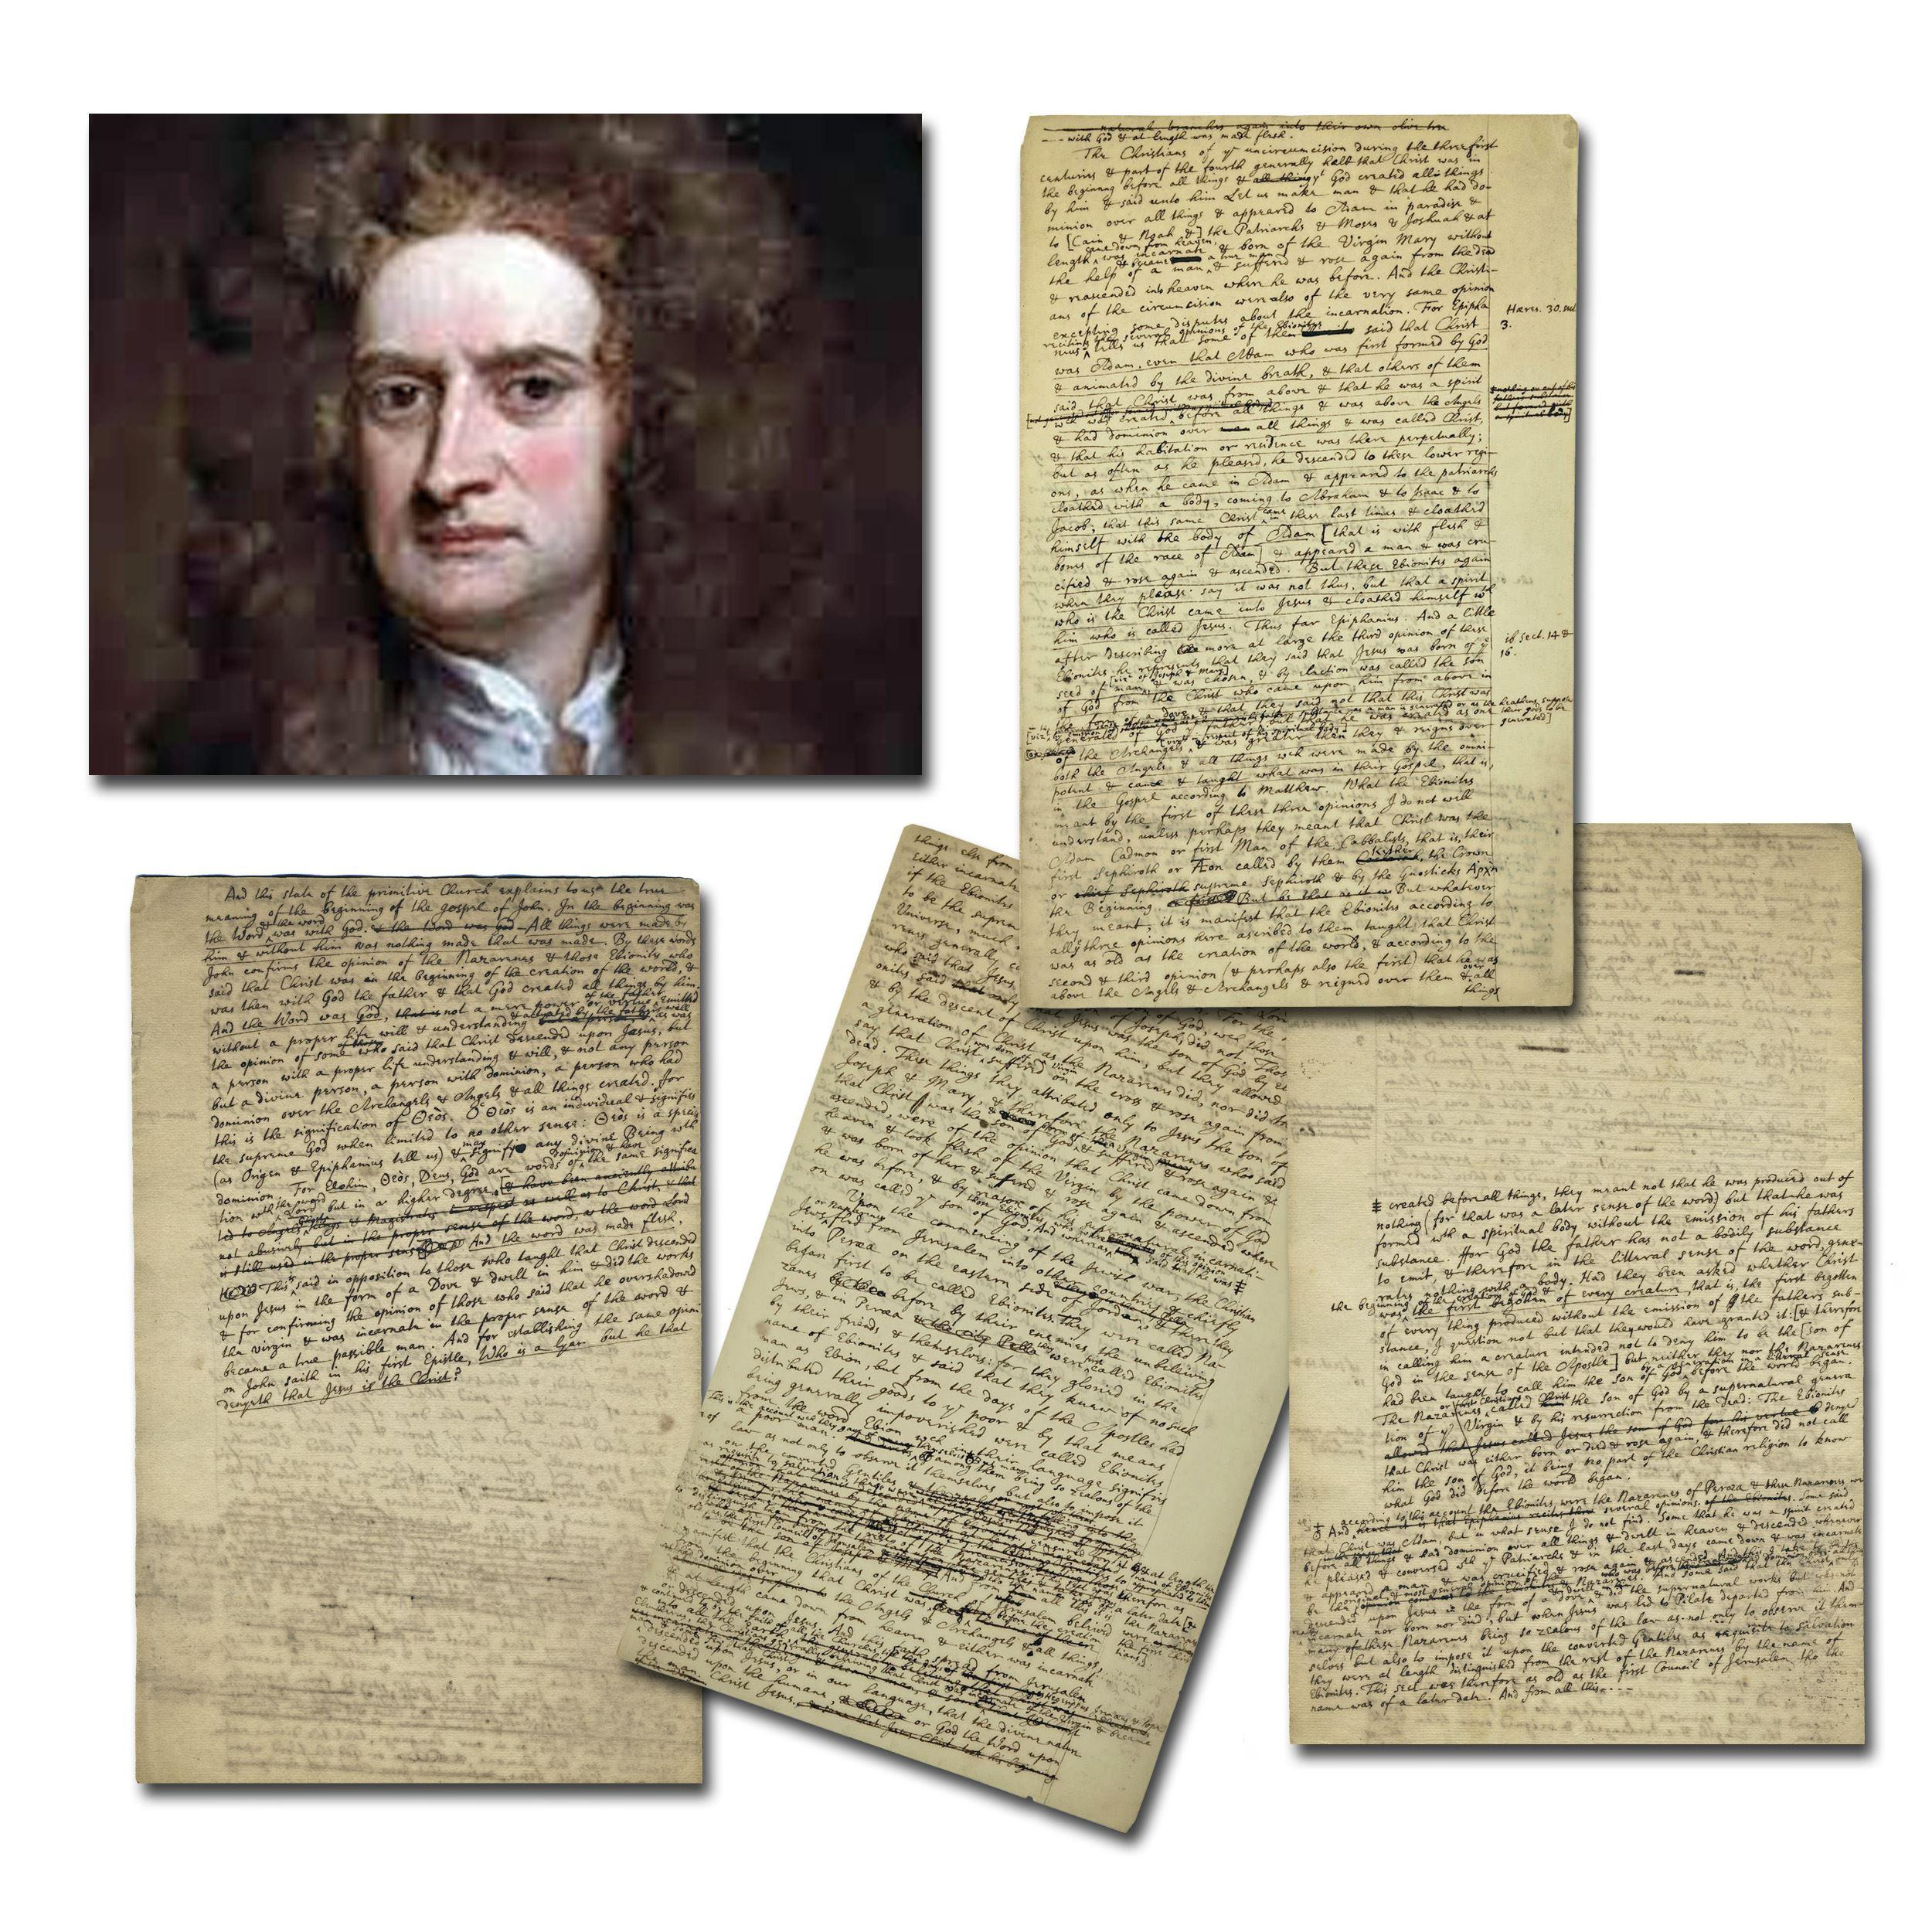 Sir Isaac Newton Highly Important Manuscript on God & Creation, 4p. or Almost 2,300 Words in his Hand!